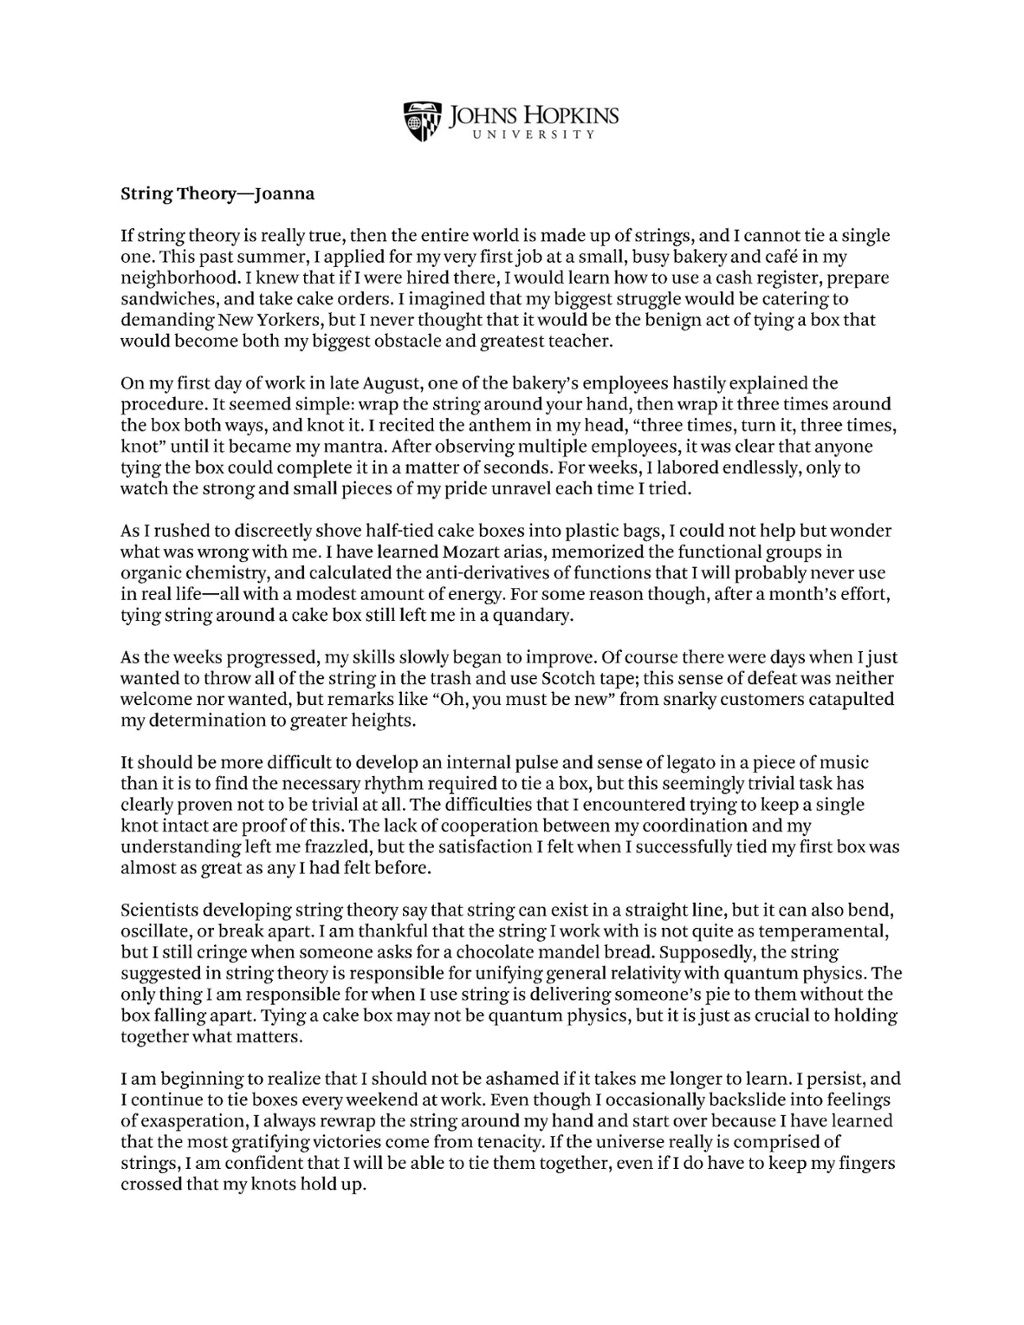 002 Essay Example College Requirements Outstanding Board 2017 Boston Sat Requirement Full